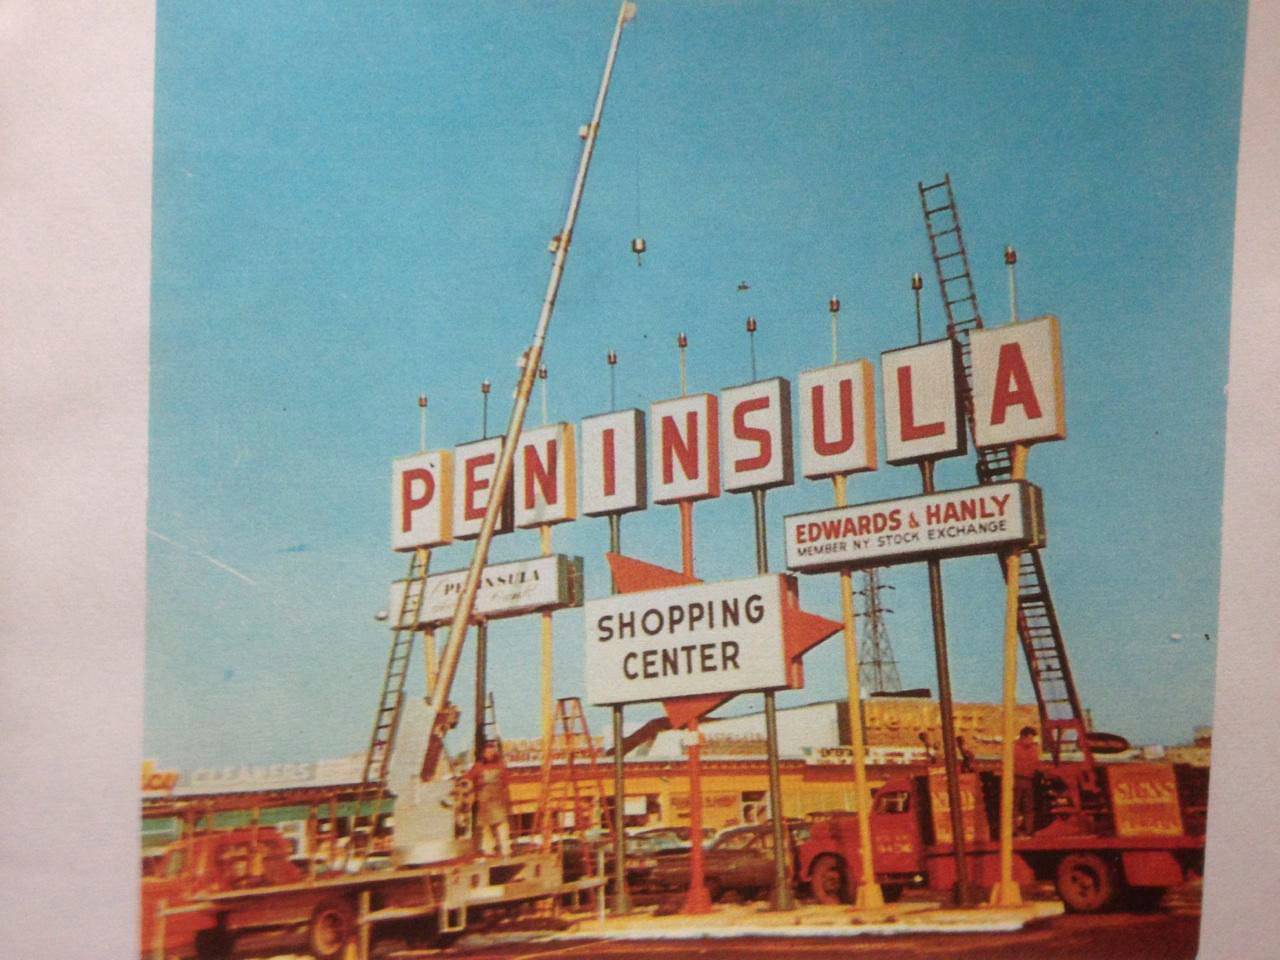 The shopping center as it appeared after it was built in 1959.